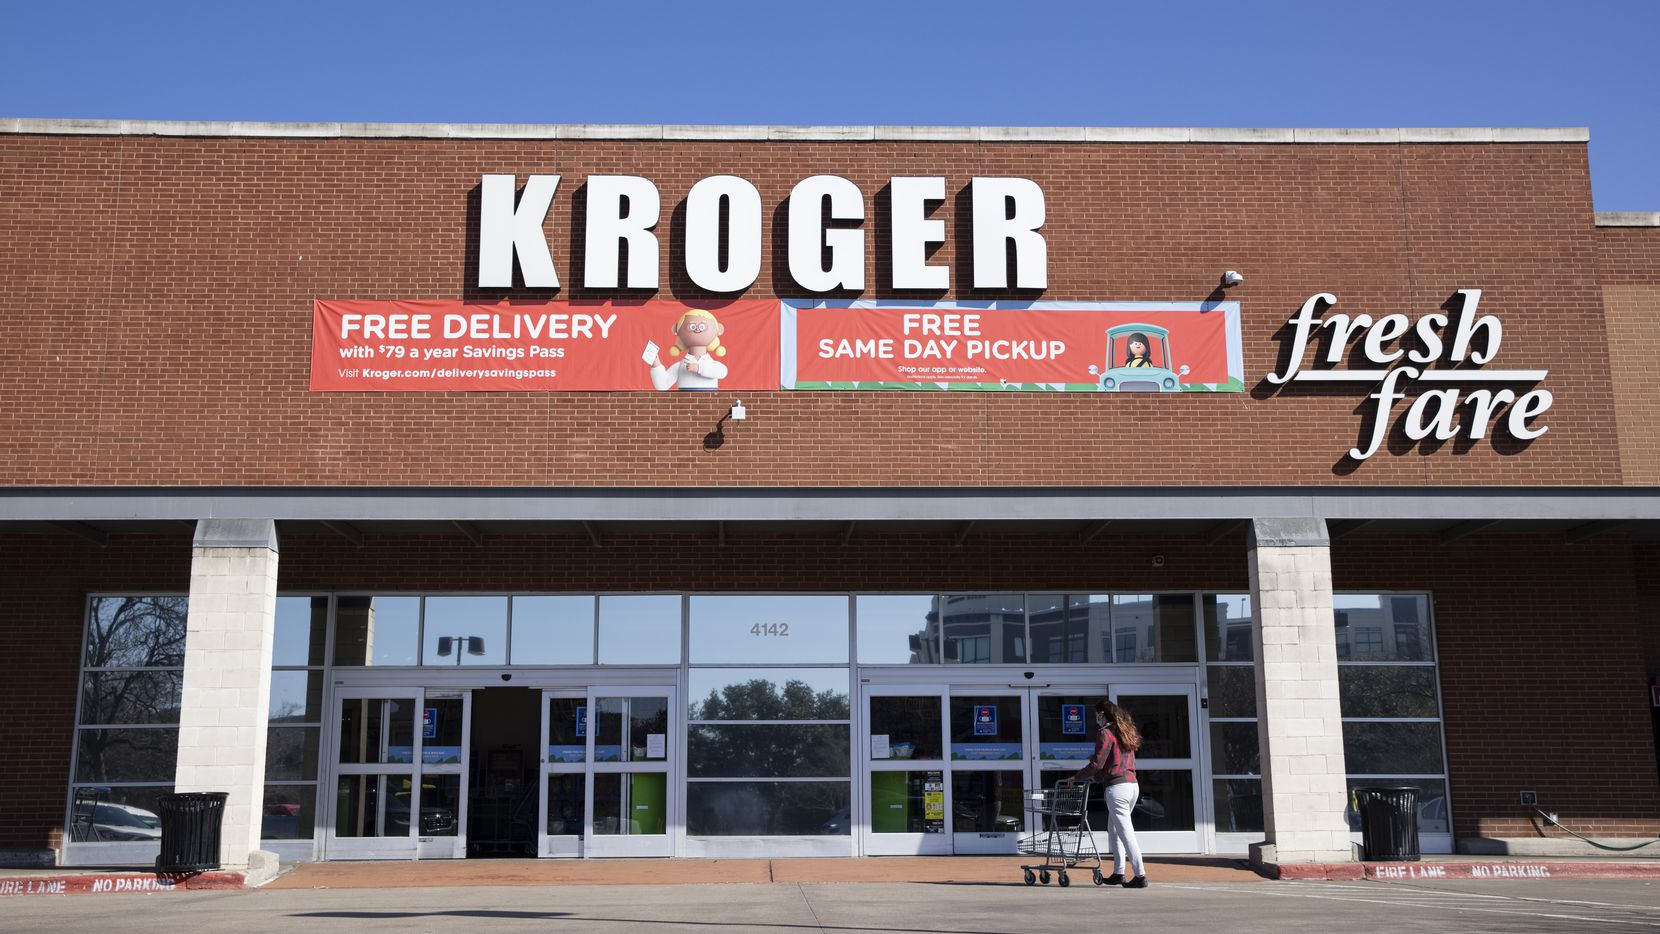 The exterior of the Oak Lawn Kroger grocery store on Cedar Springs Road in Dallas.